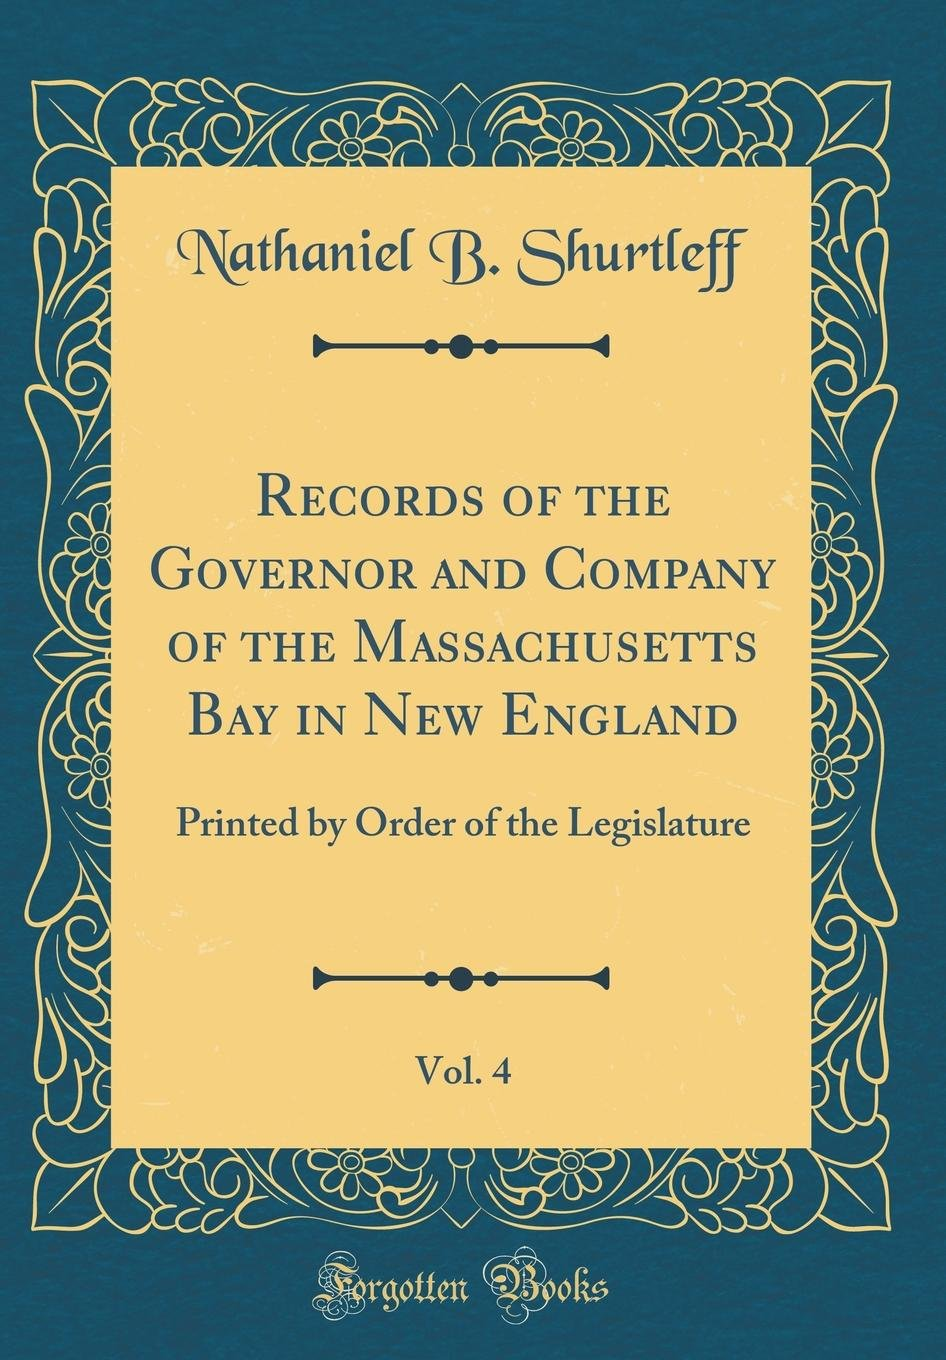 Download Records of the Governor and Company of the Massachusetts Bay in New England, Vol. 4: Printed by Order of the Legislature (Classic Reprint) ePub fb2 book